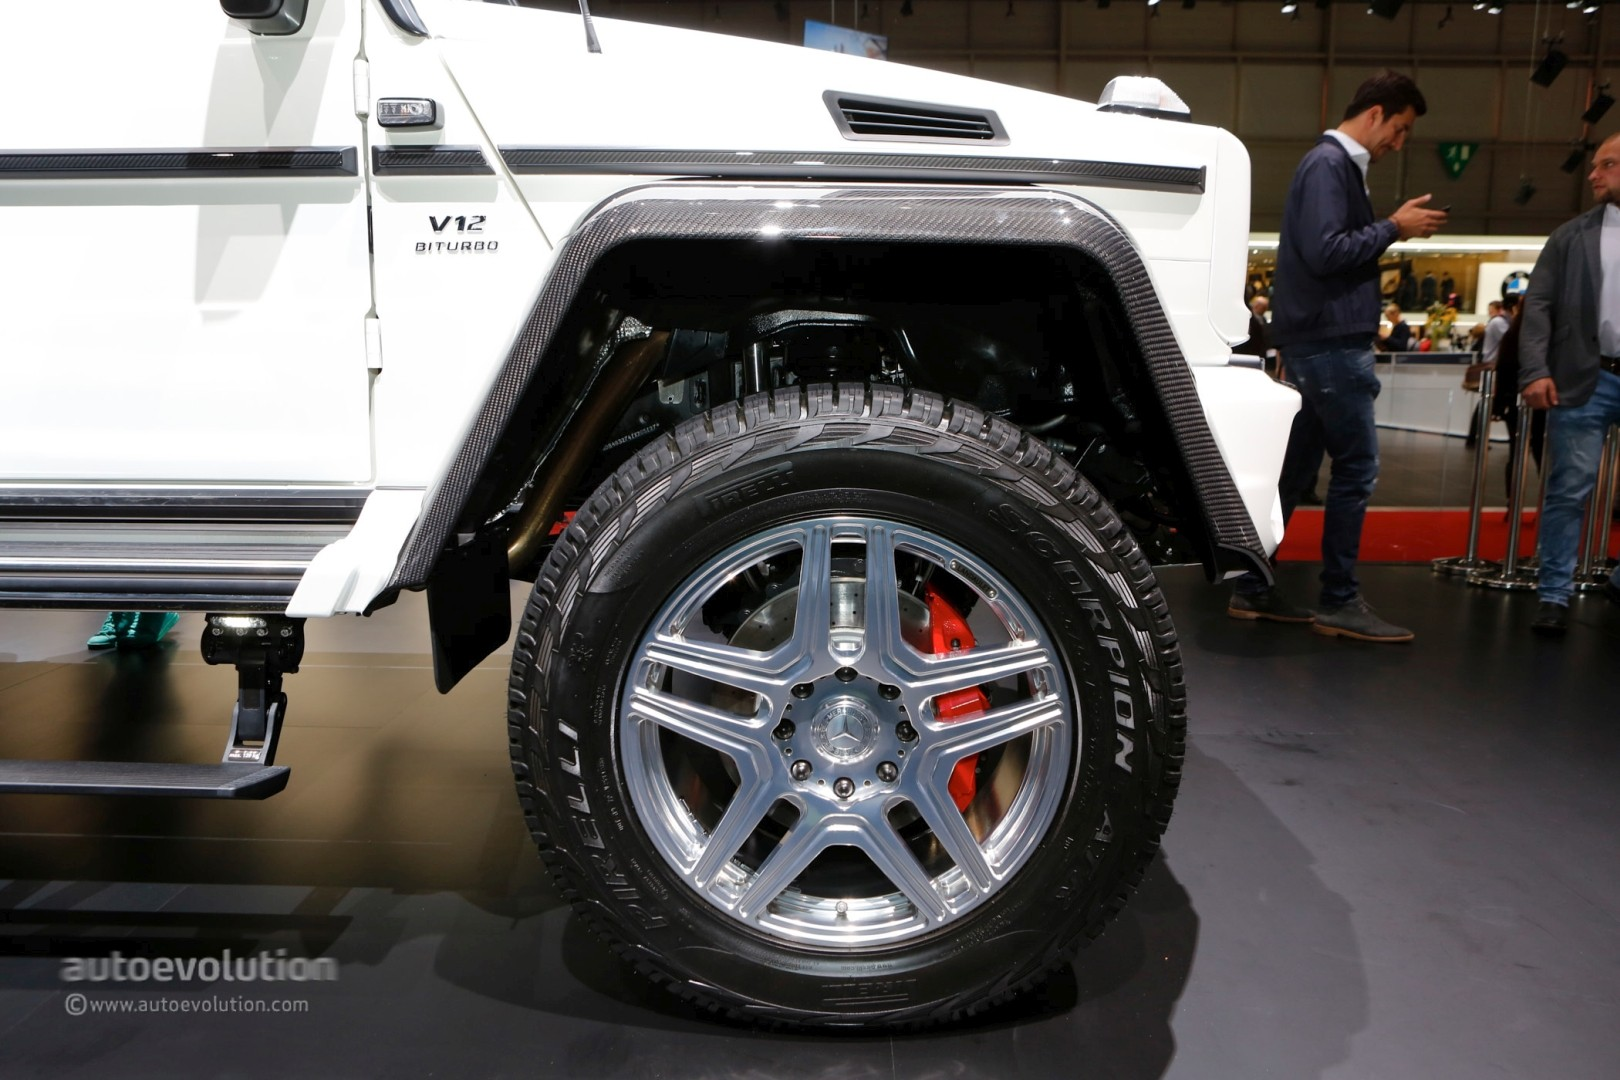 https://s1.cdn.autoevolution.com/images/news/gallery/one-example-of-the-2018-mercedes-maybach-g650-landaulet-is-heading-to-auction_8.jpg